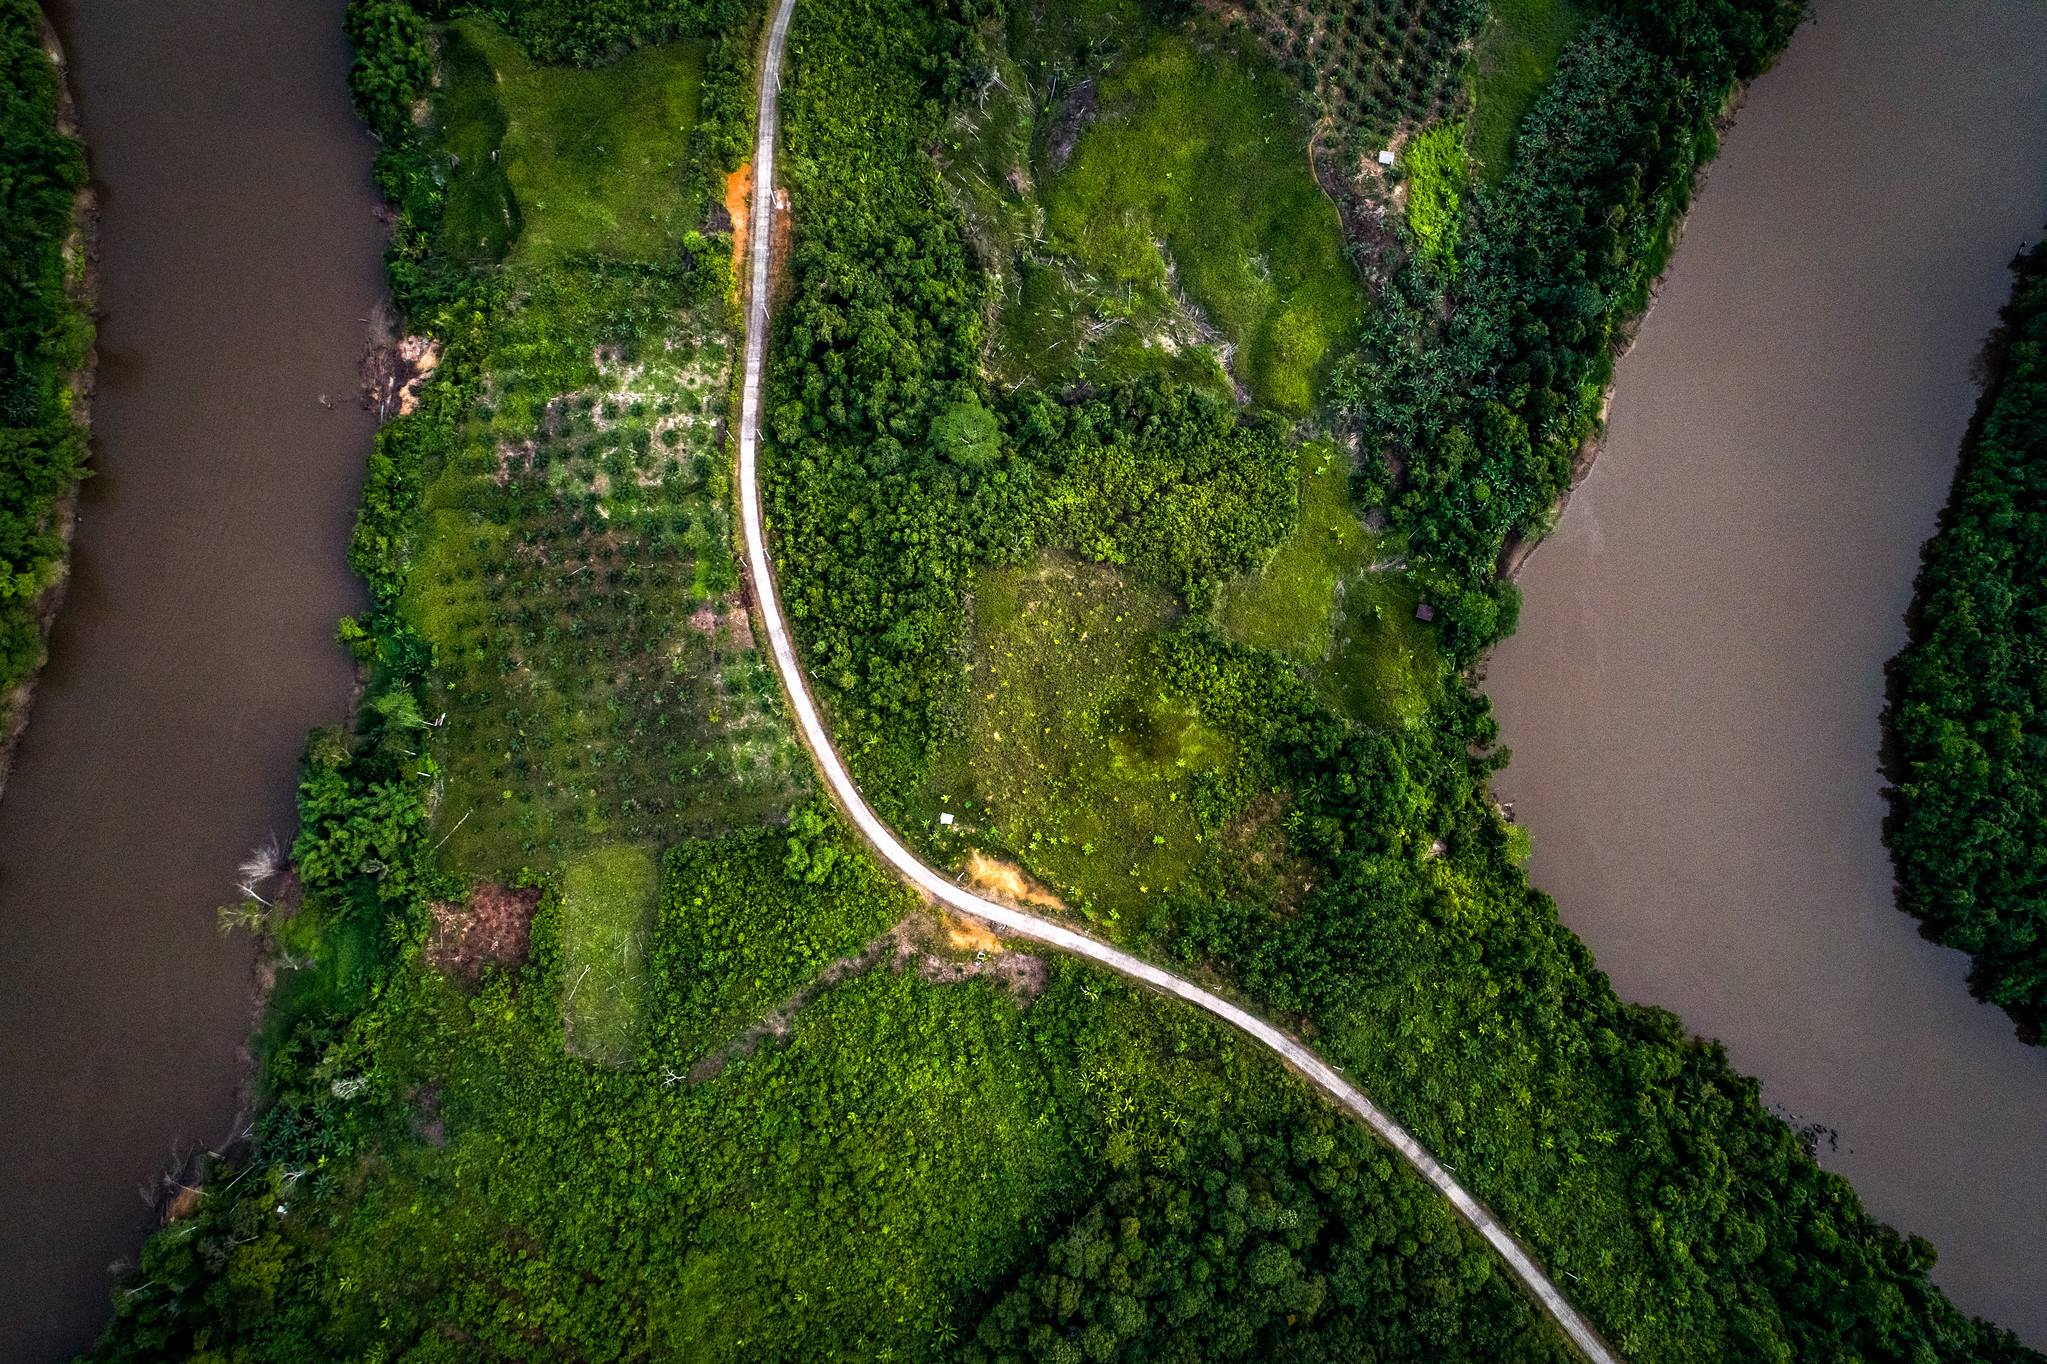 <p>Aerial view of the forest in East Kalimantan, home to a growing palm oil industry. Photo by Nanang Sujana/CIFOR.</p>